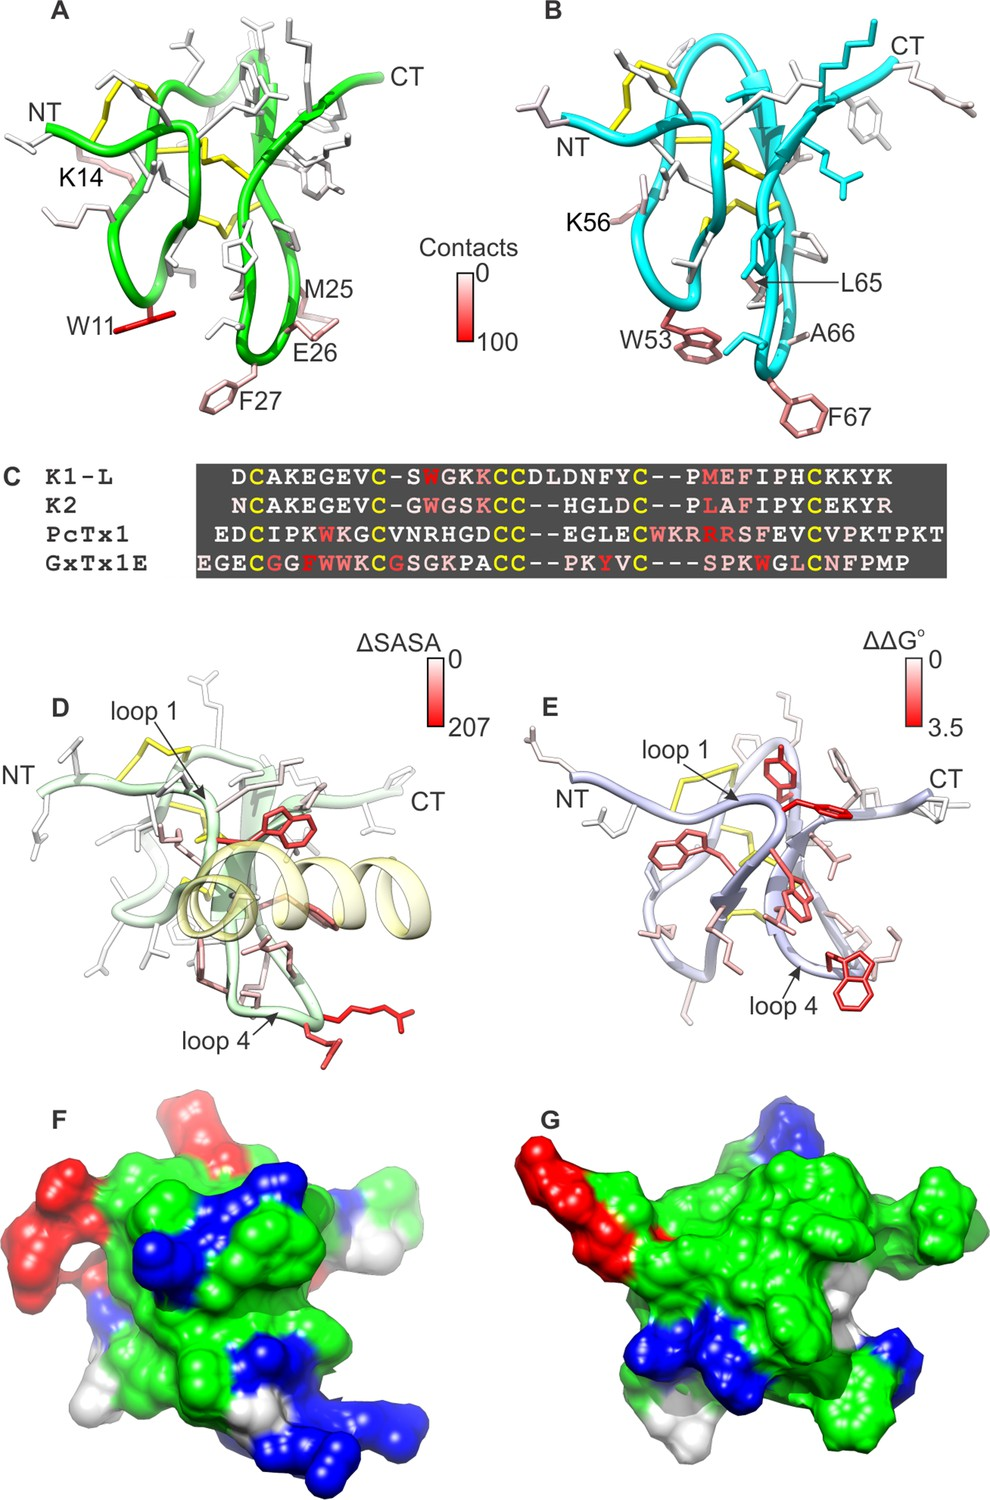 Structural insights into the mechanism of activation of the TRPV1